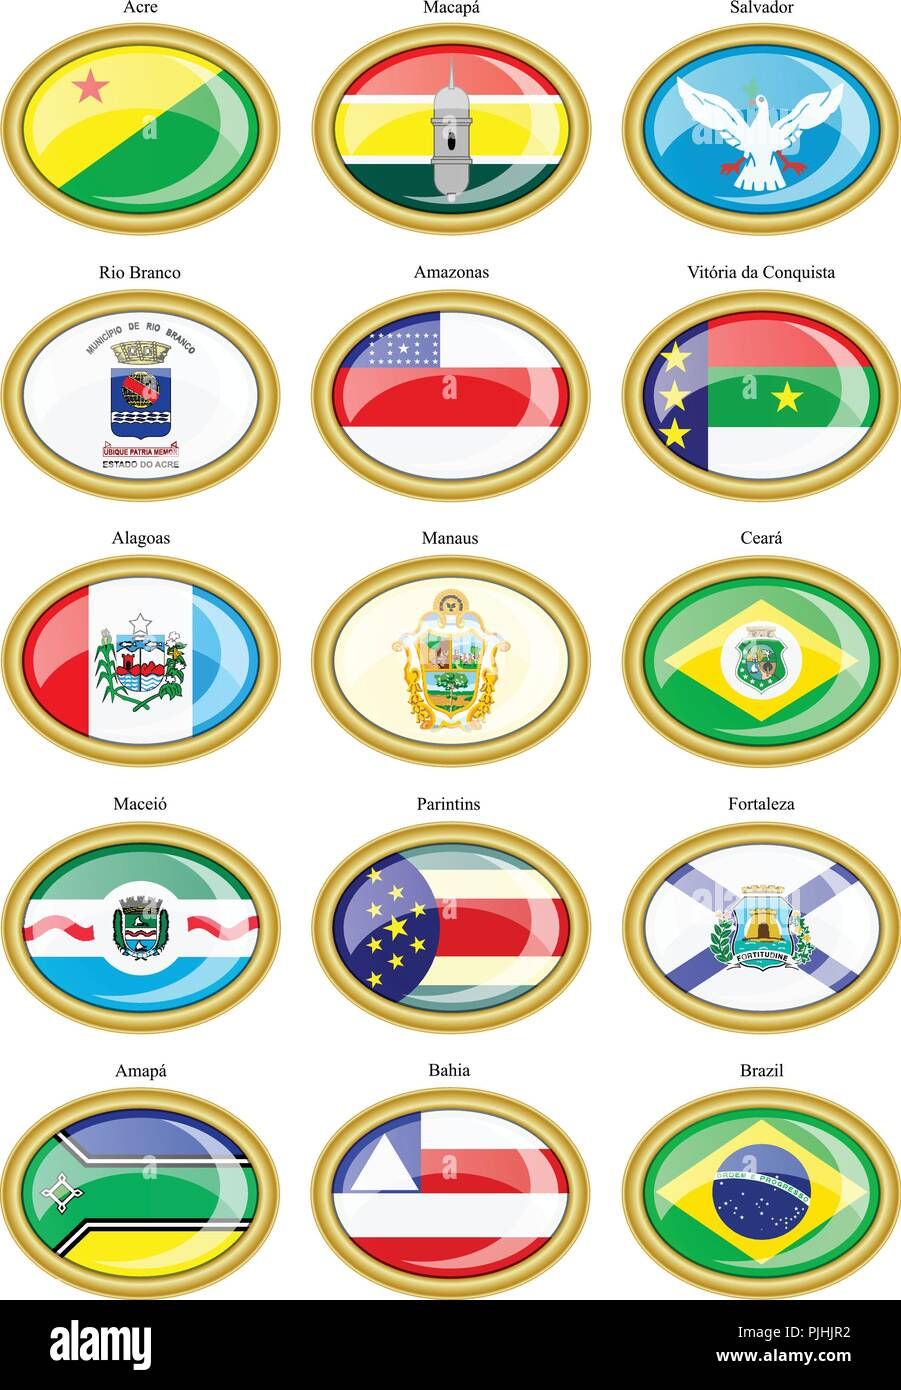 Set of icons. Flags of the Brazilian states and cities. Stock Vector